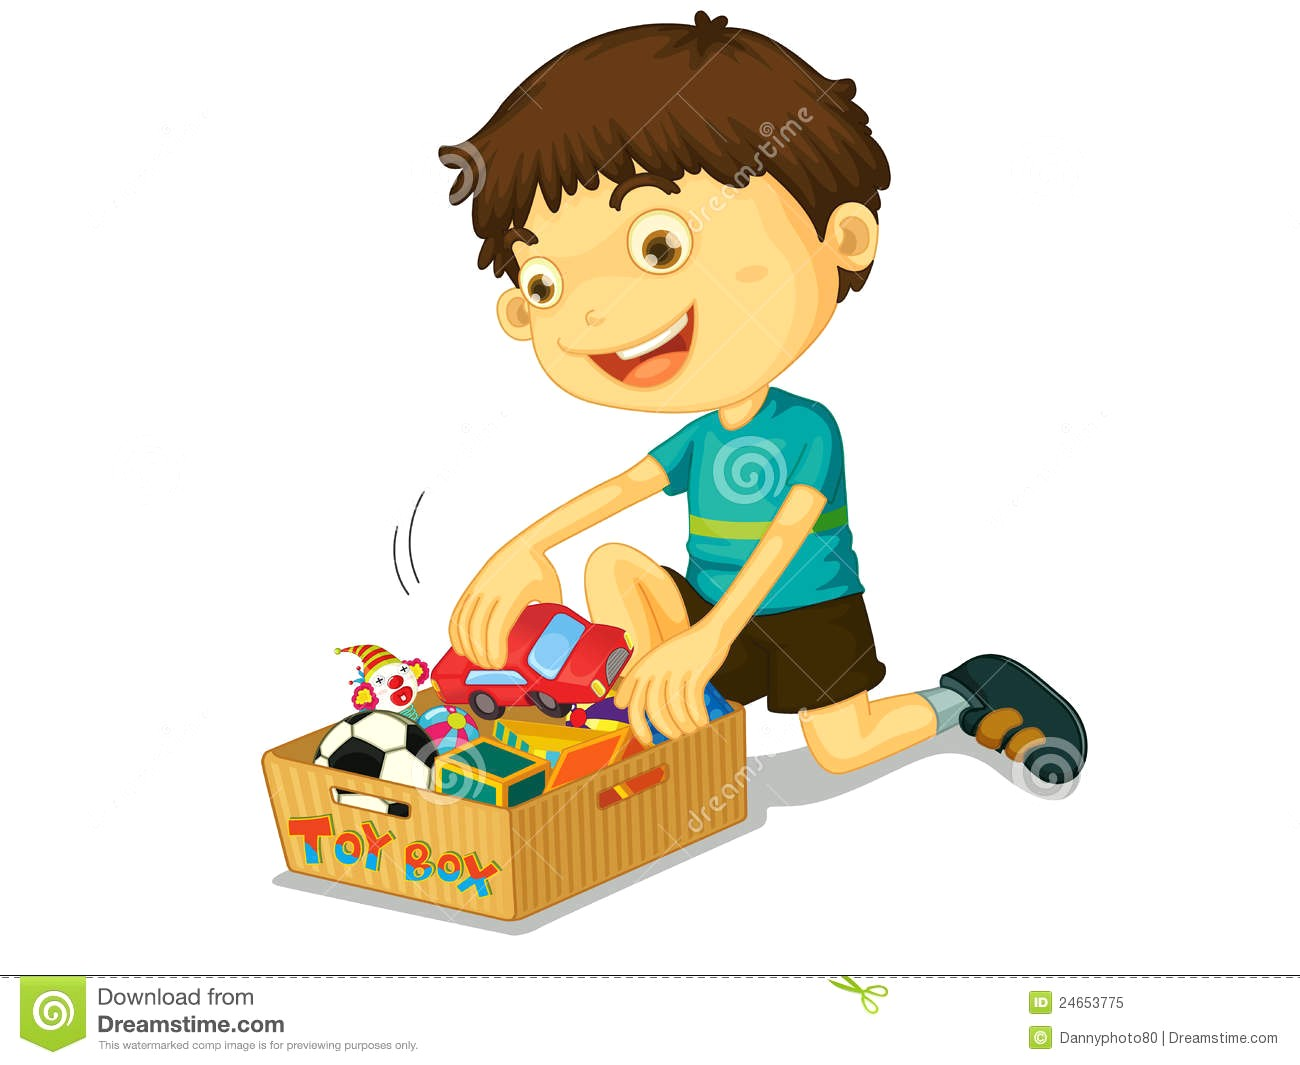 Boy clean up toys clipart 1 » Clipart Station.